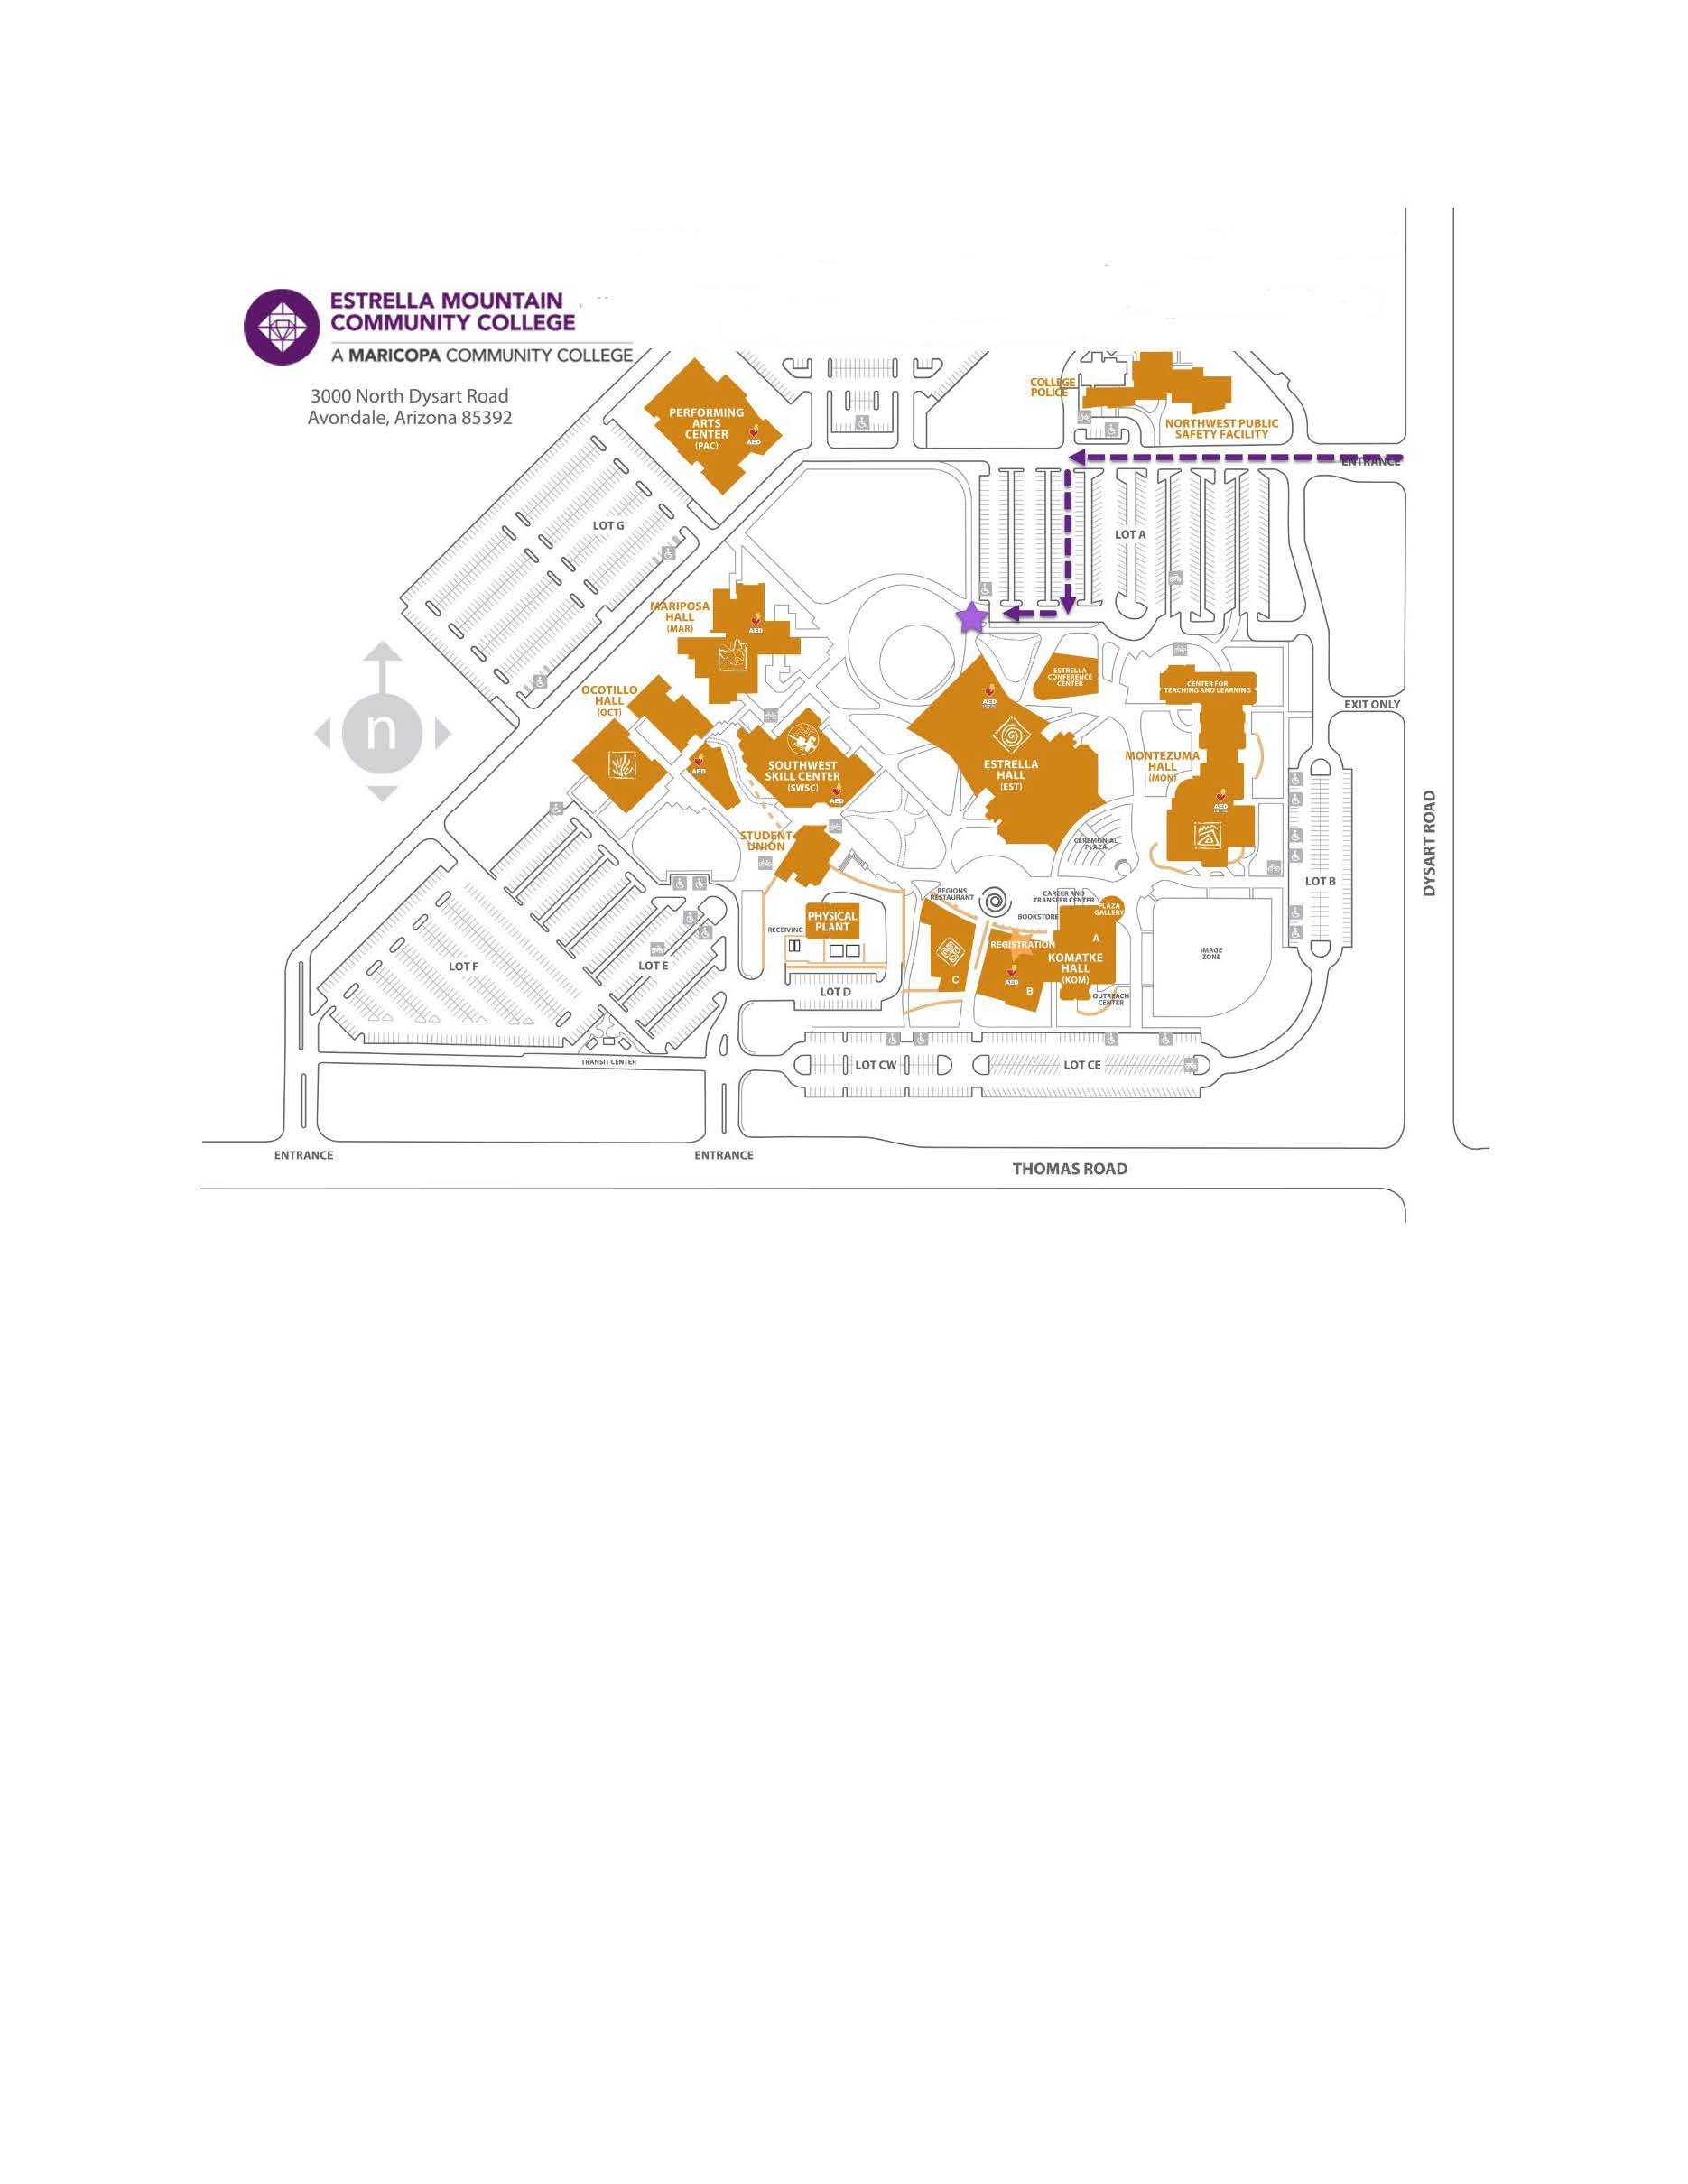 College map showing a path from the entrance at Dysart to the library book drop located near the northeast corner of Estrella Hall.